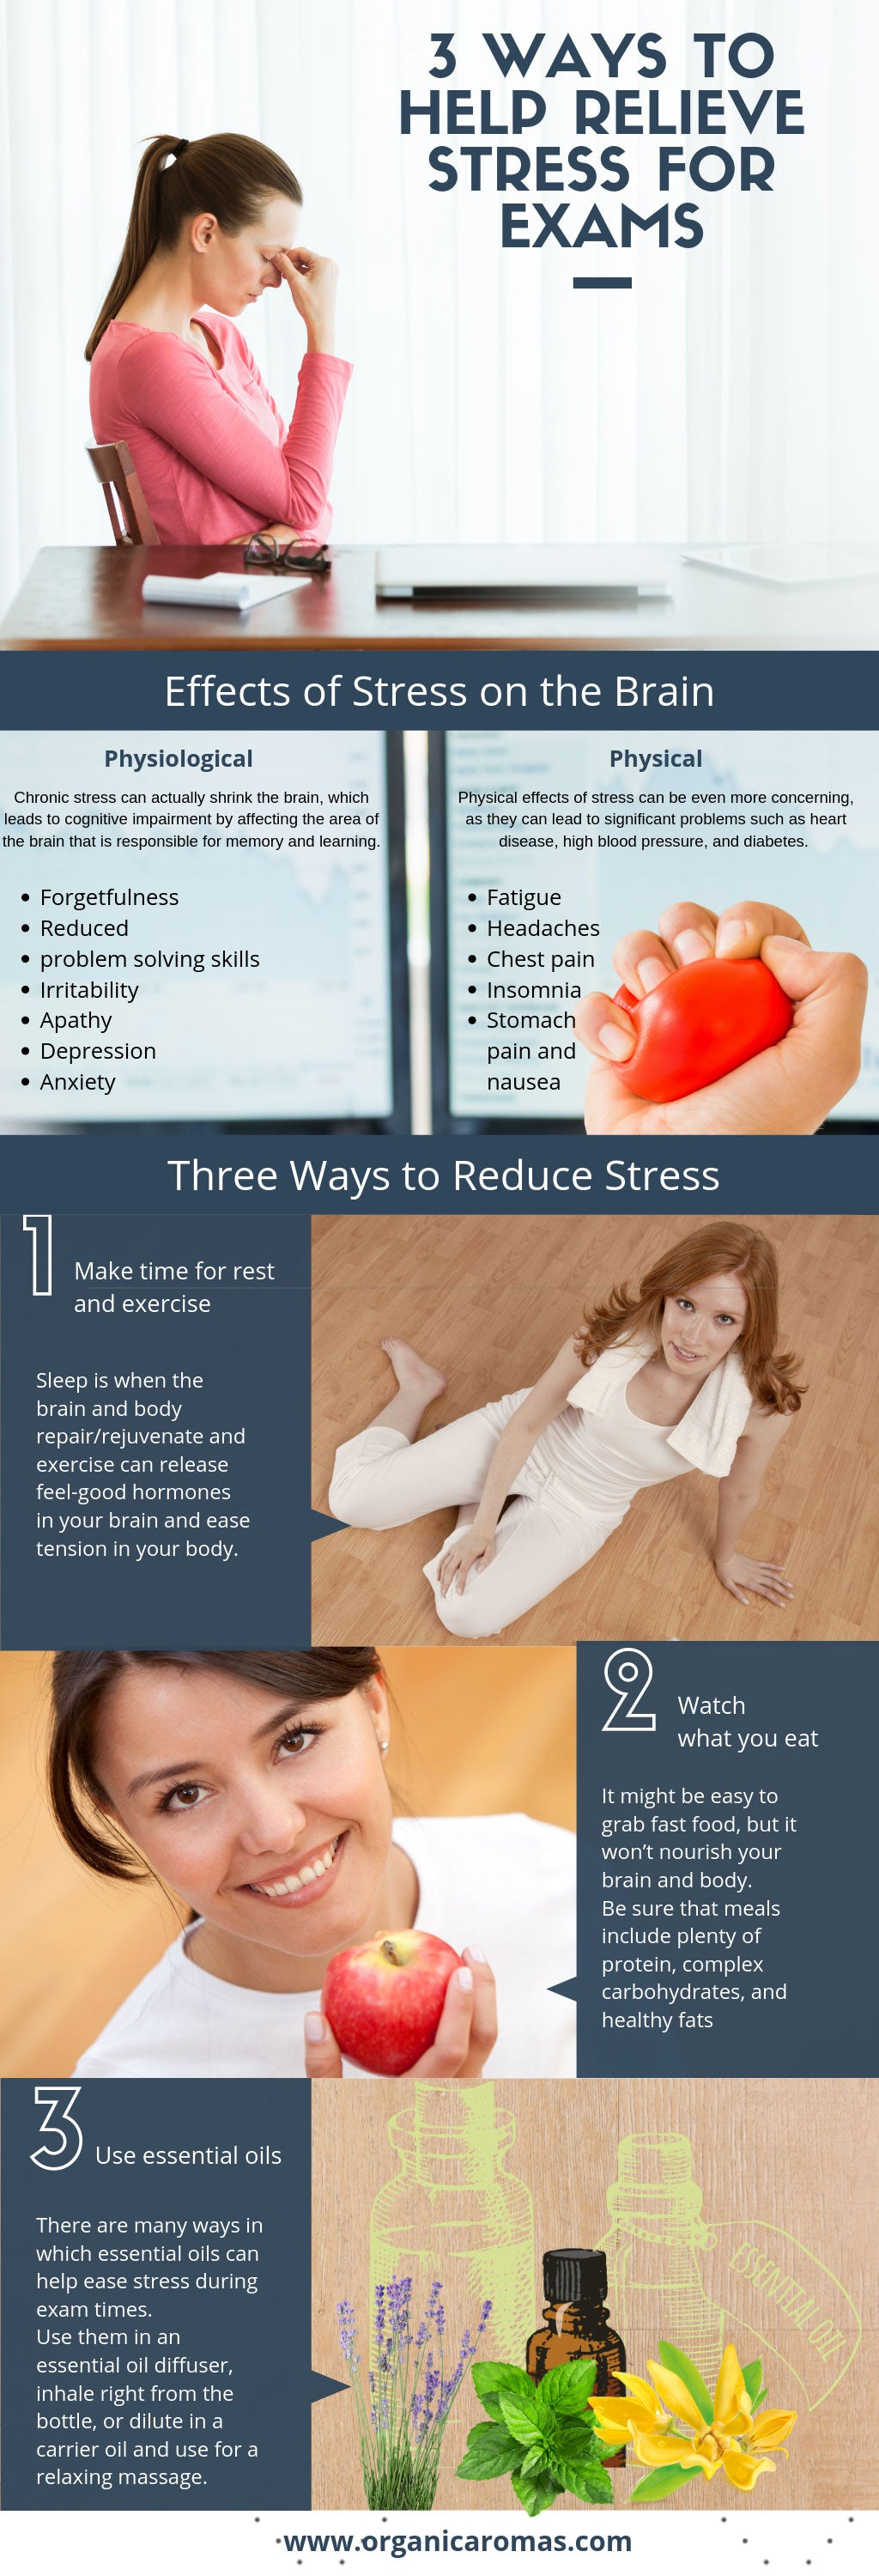 3 Ways to Help Relieve Stress for Exams